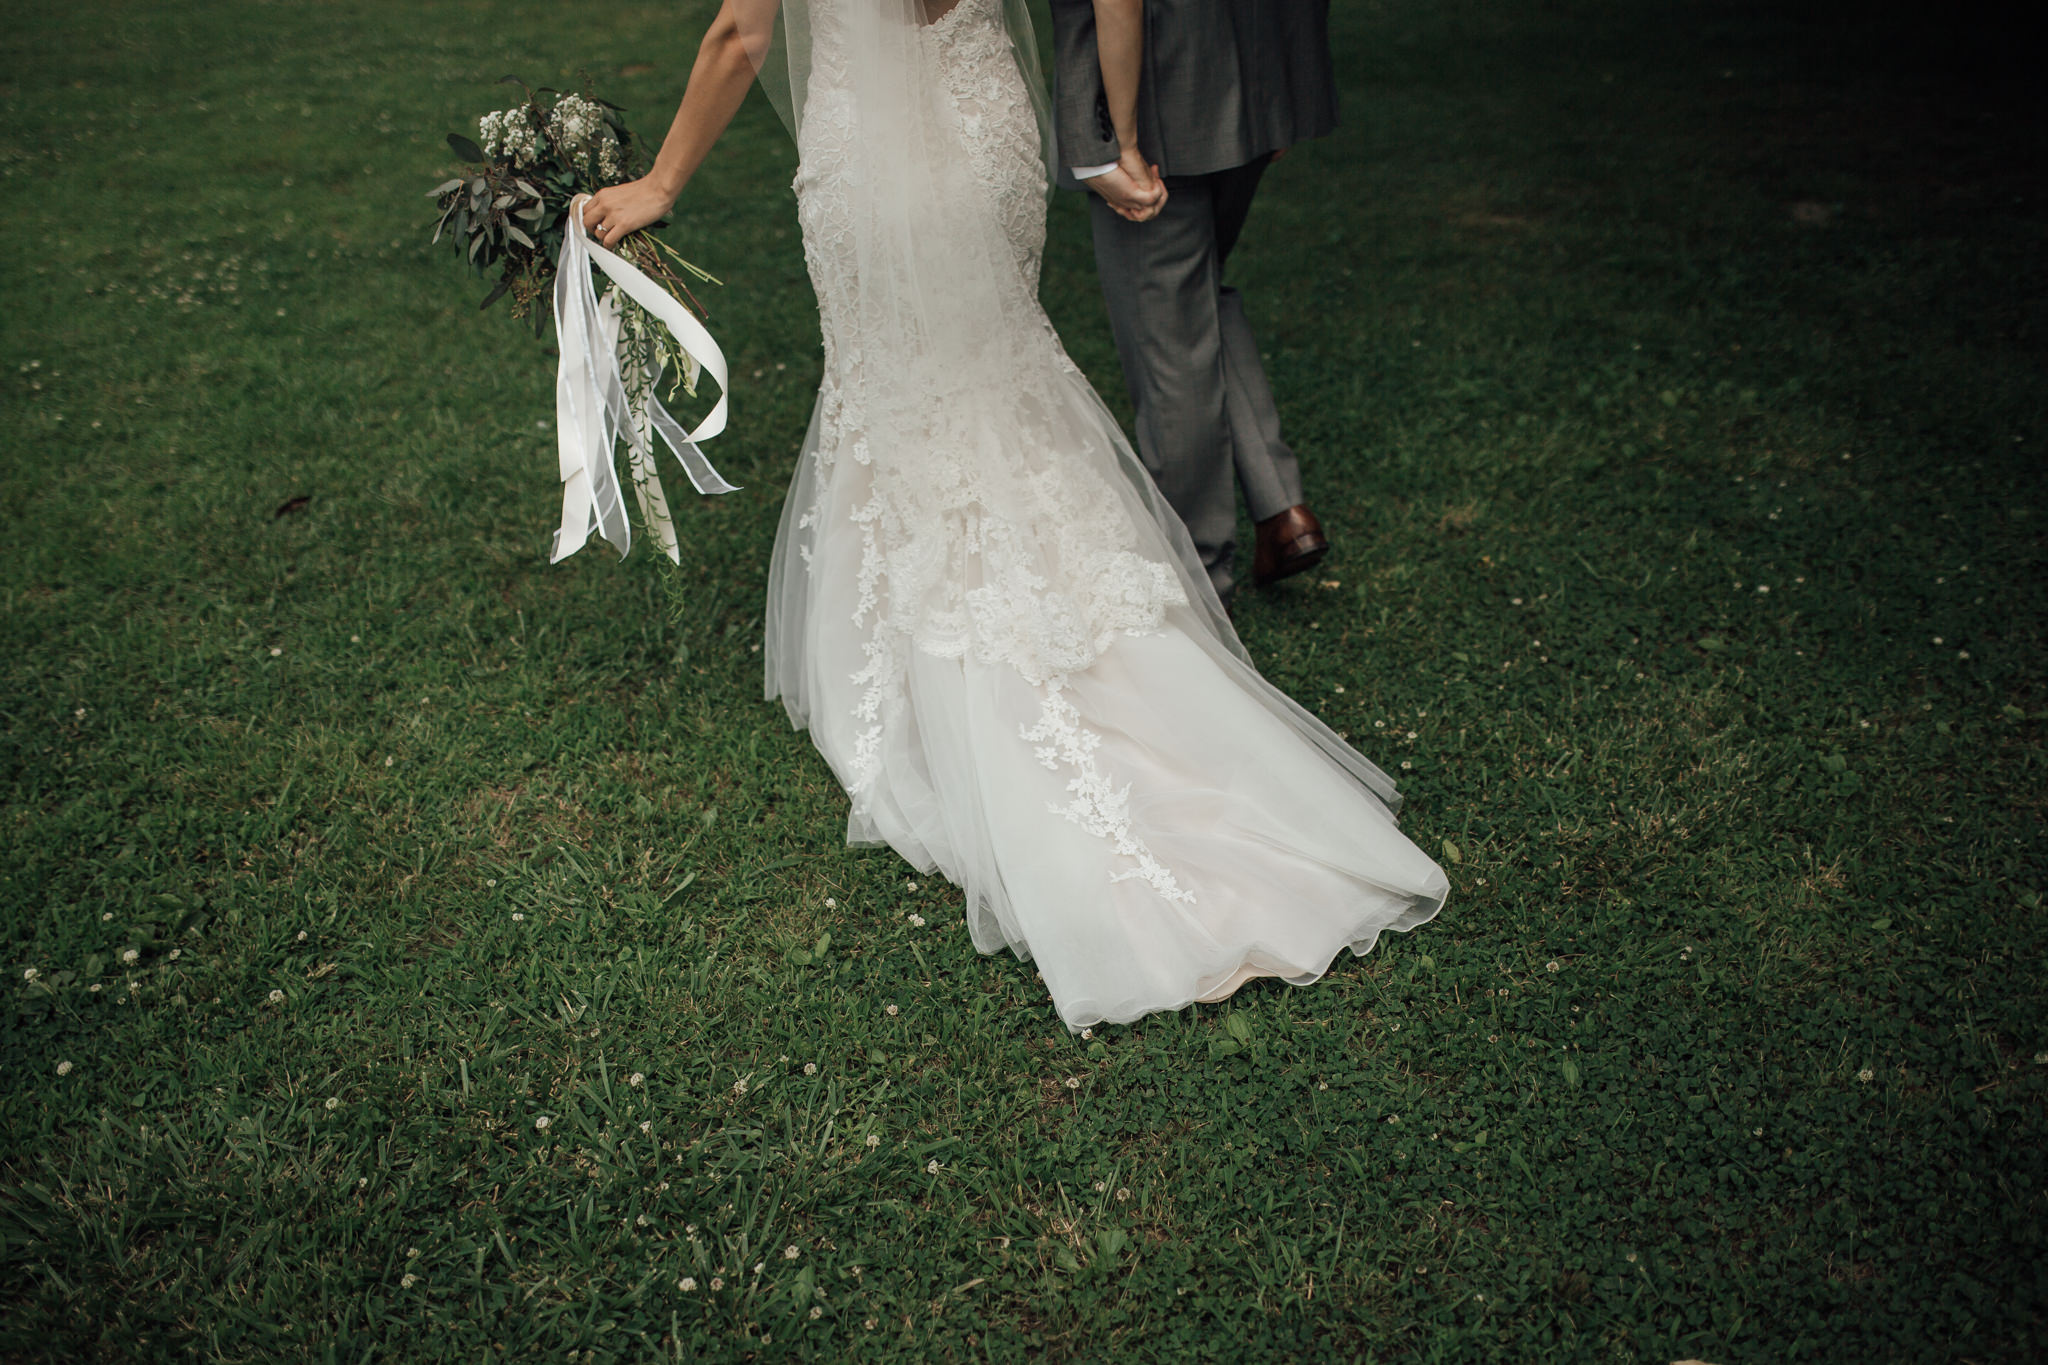 cassie-cook-photography-memphis-wedding-photographer-hedge-farm-wedding-venue-103.jpg